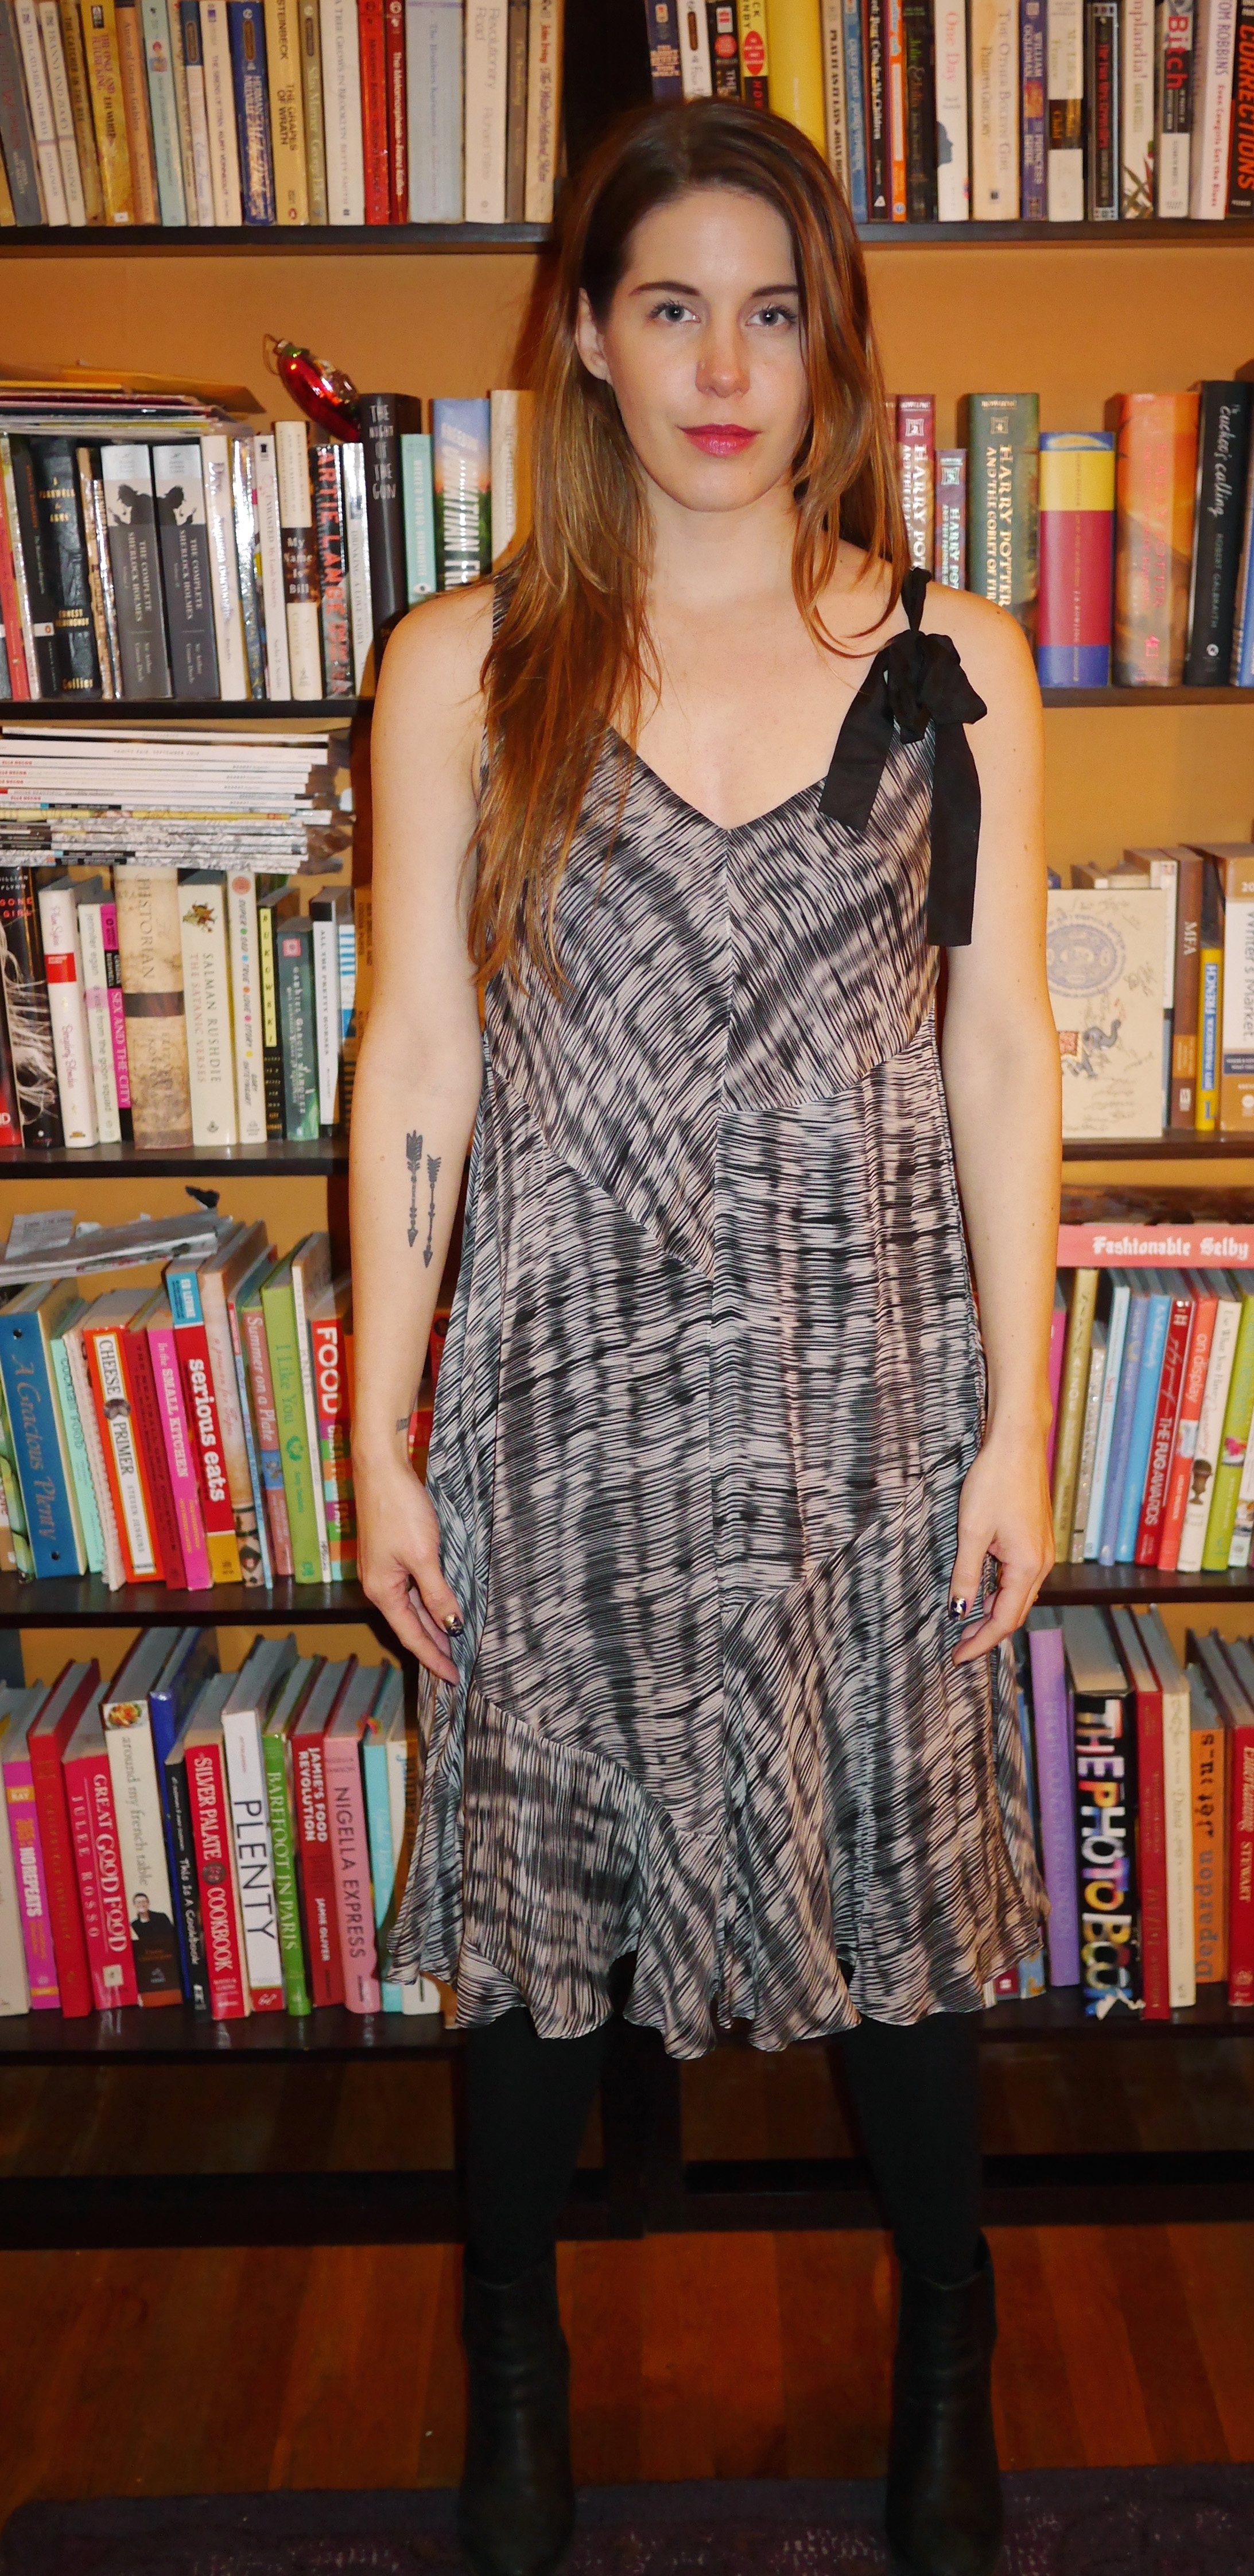 """6e94cef6 Black and White """"Sack Dress:"""" Pure DKNY (Lord & Taylor) 